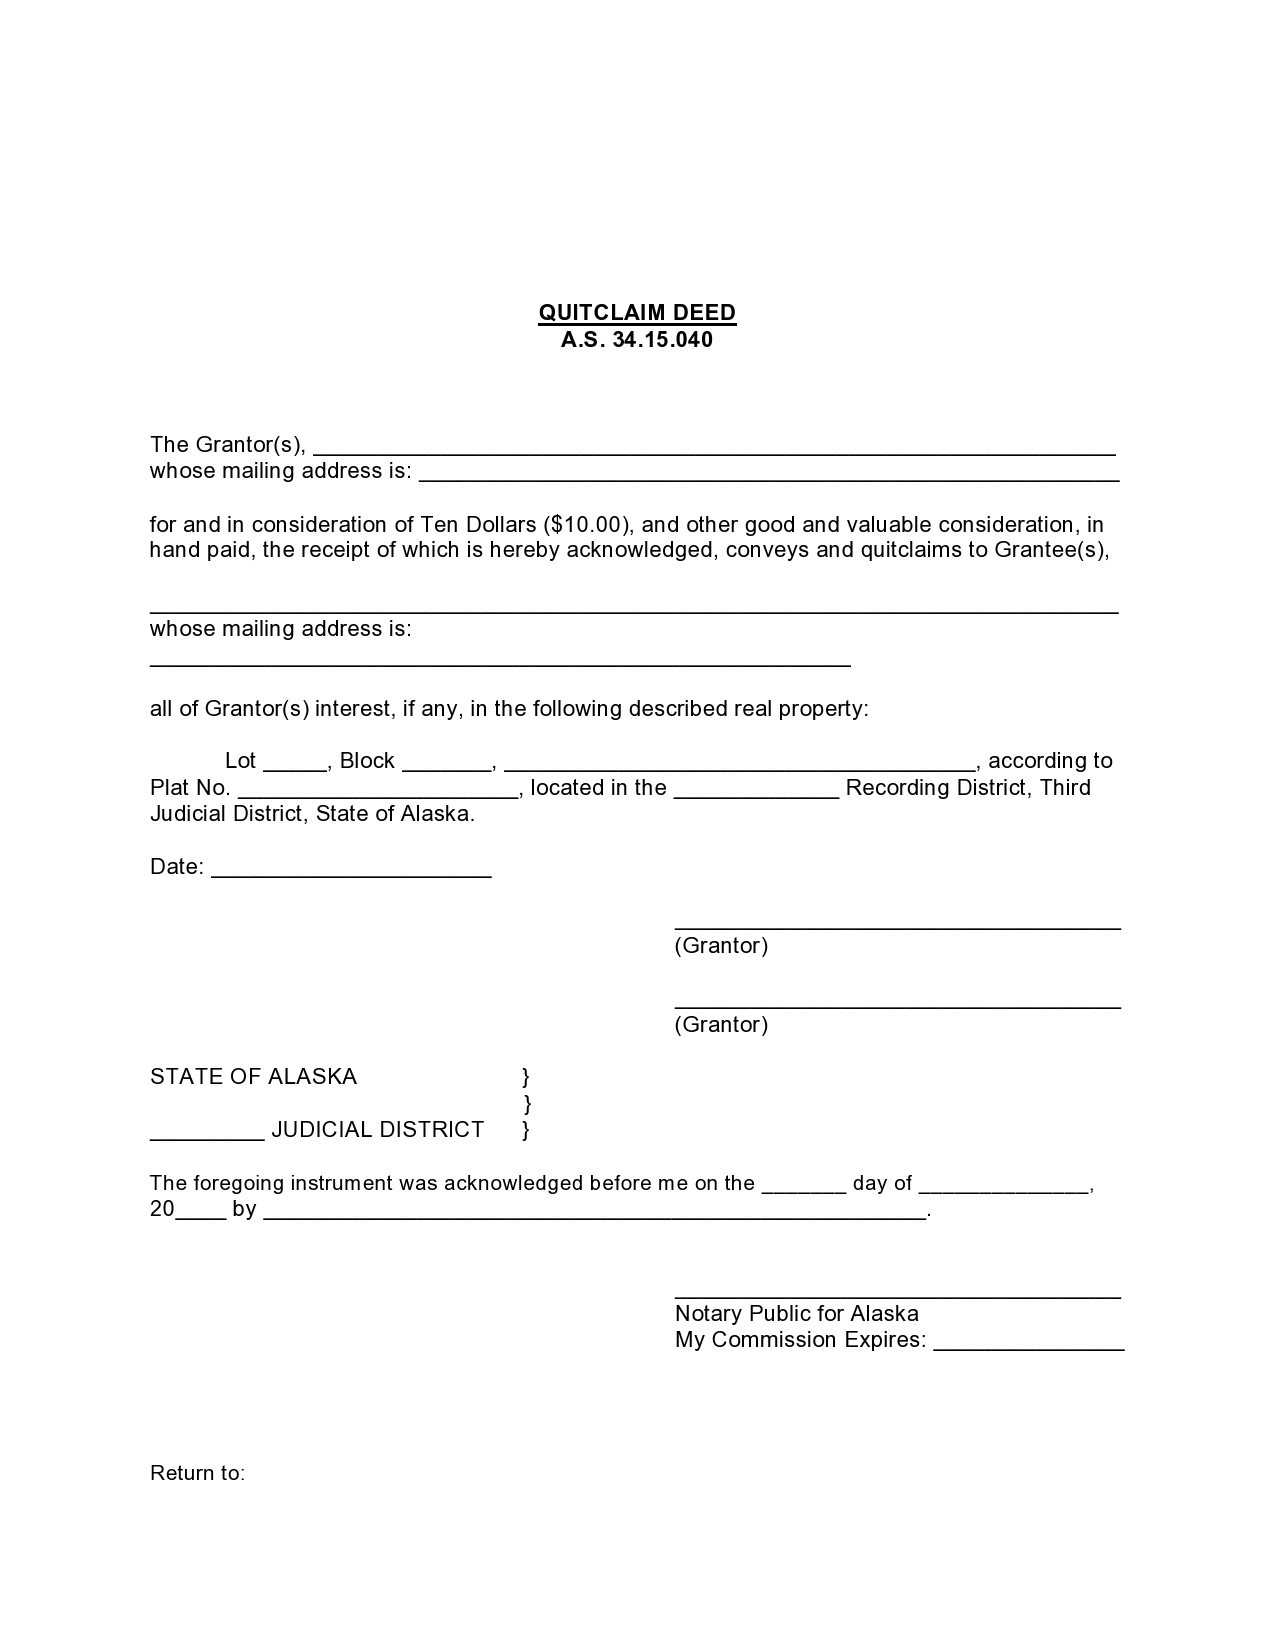 Free quit claim deed form 19